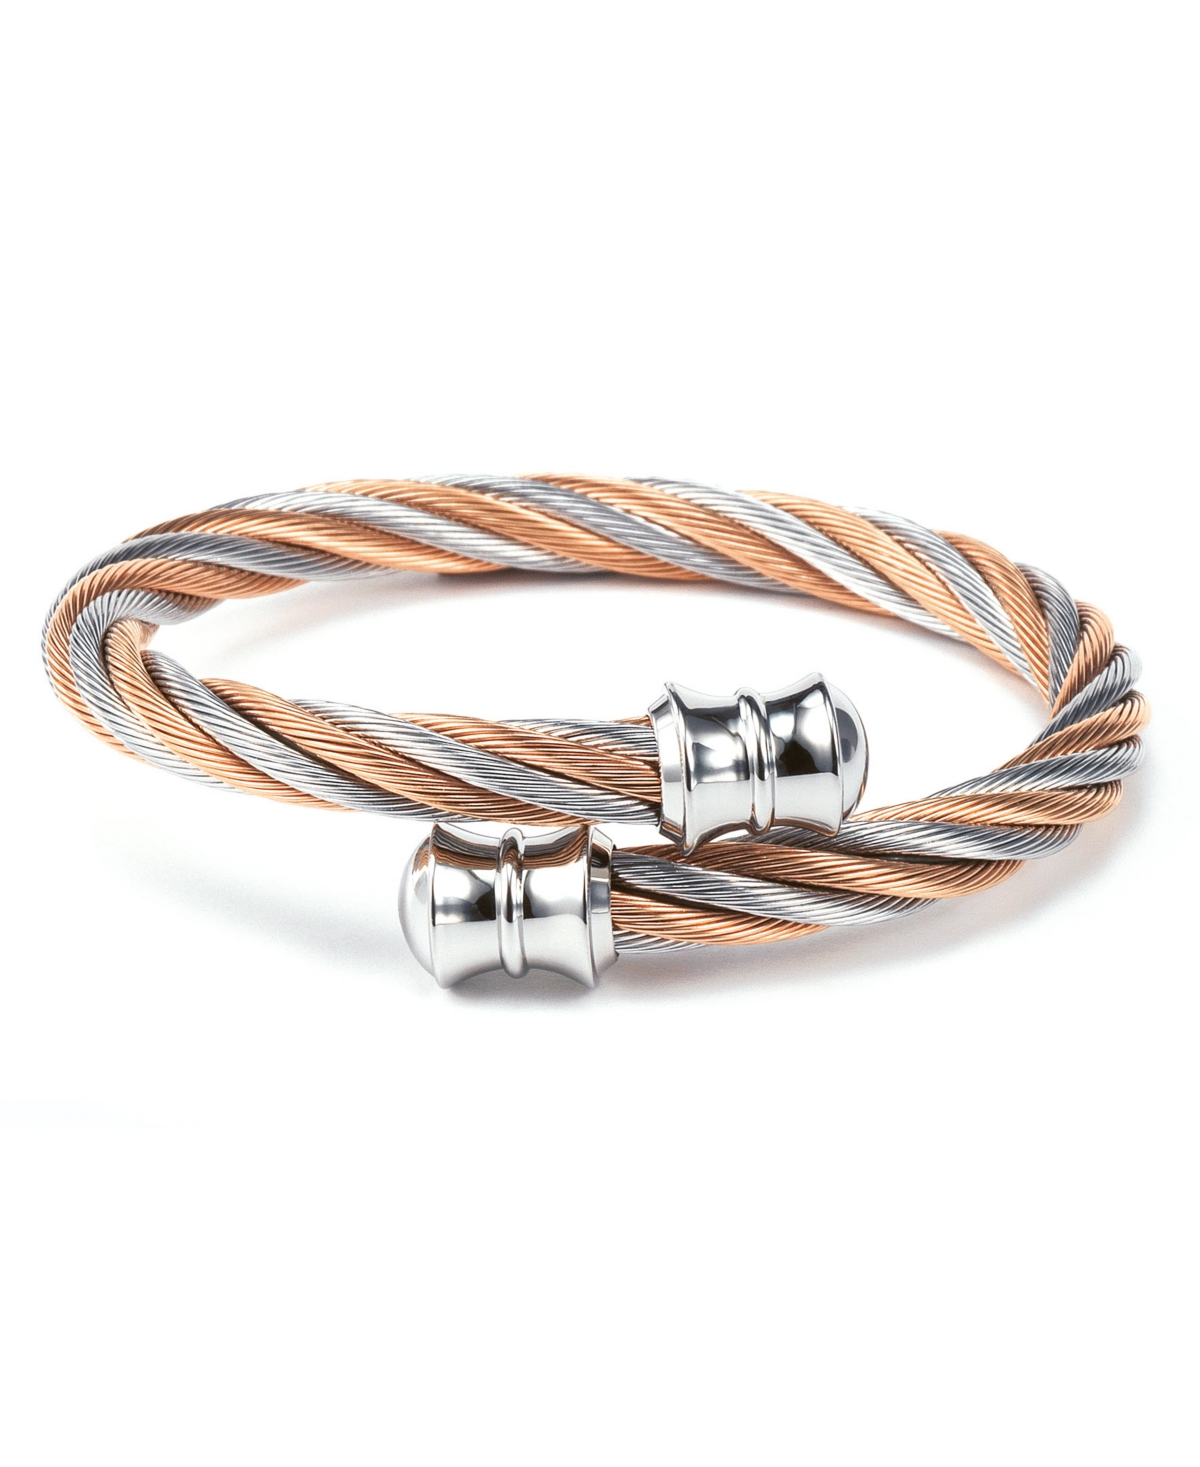 Celtic, Stainless steel Two Tone Bangle, Stainless steel rose gold Pvd cable